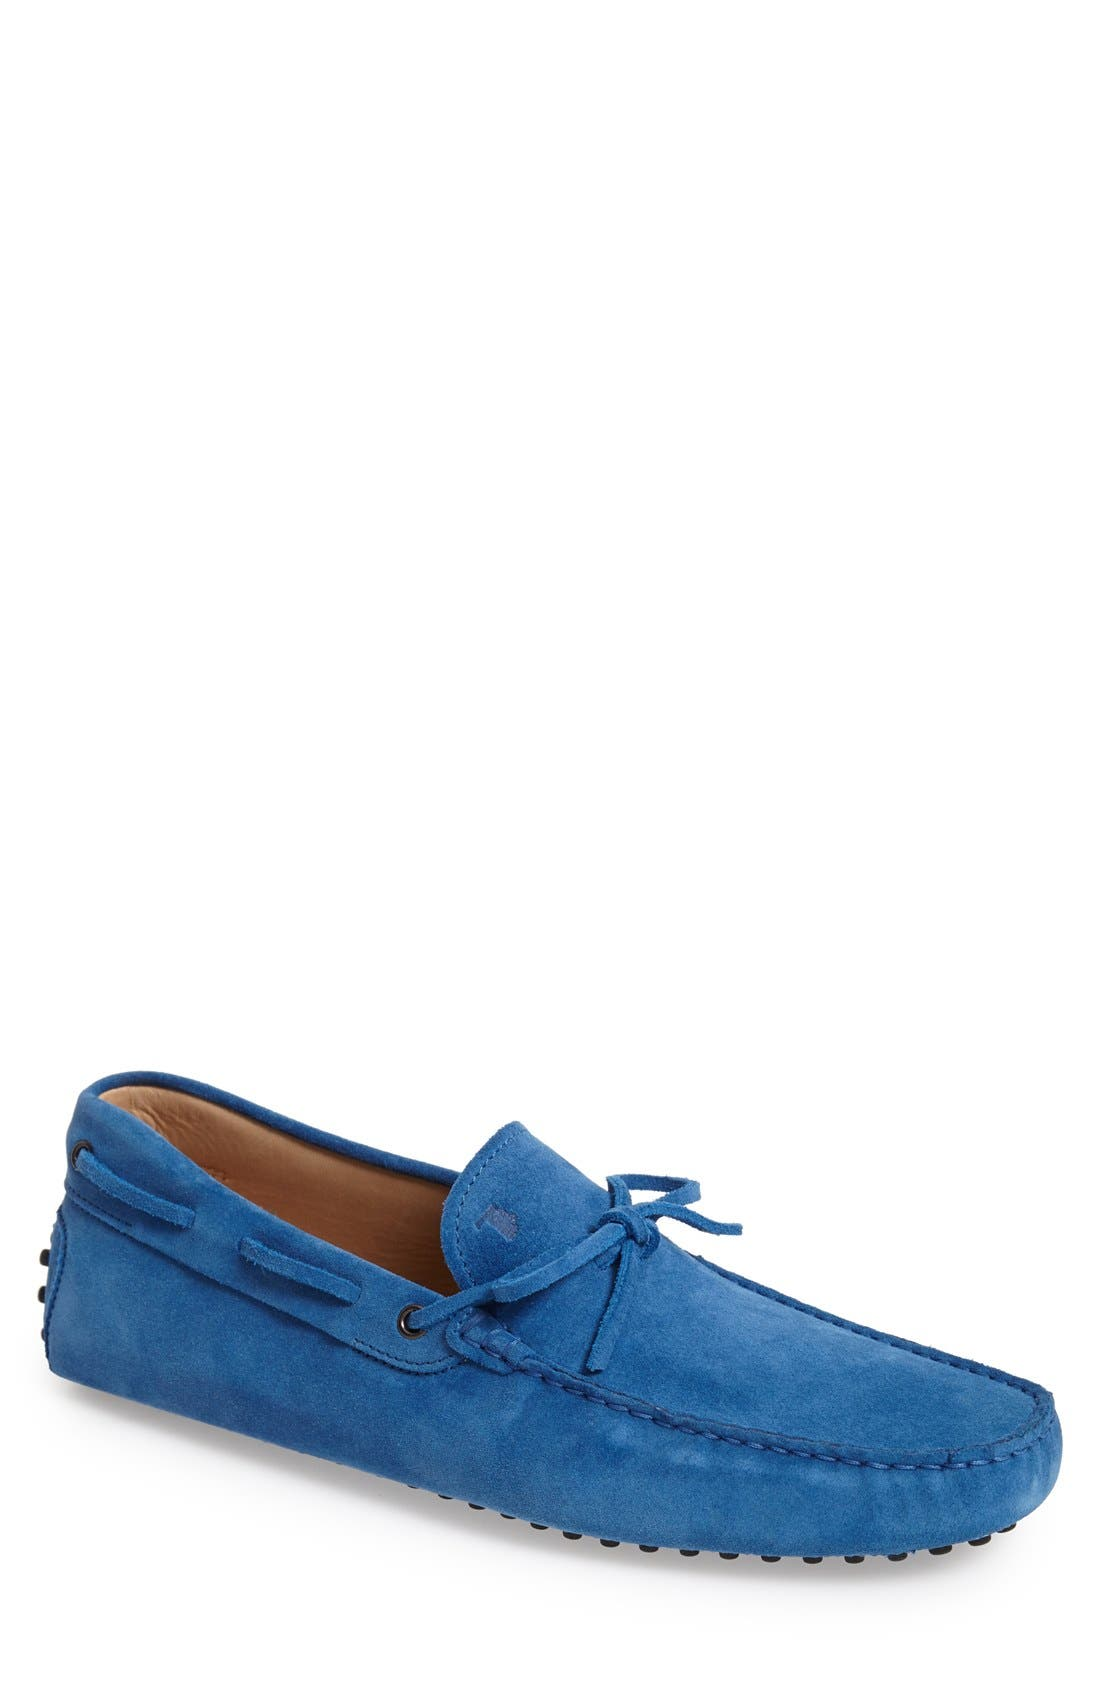 Gommini Tie Front Driving Moccasin,                             Main thumbnail 11, color,